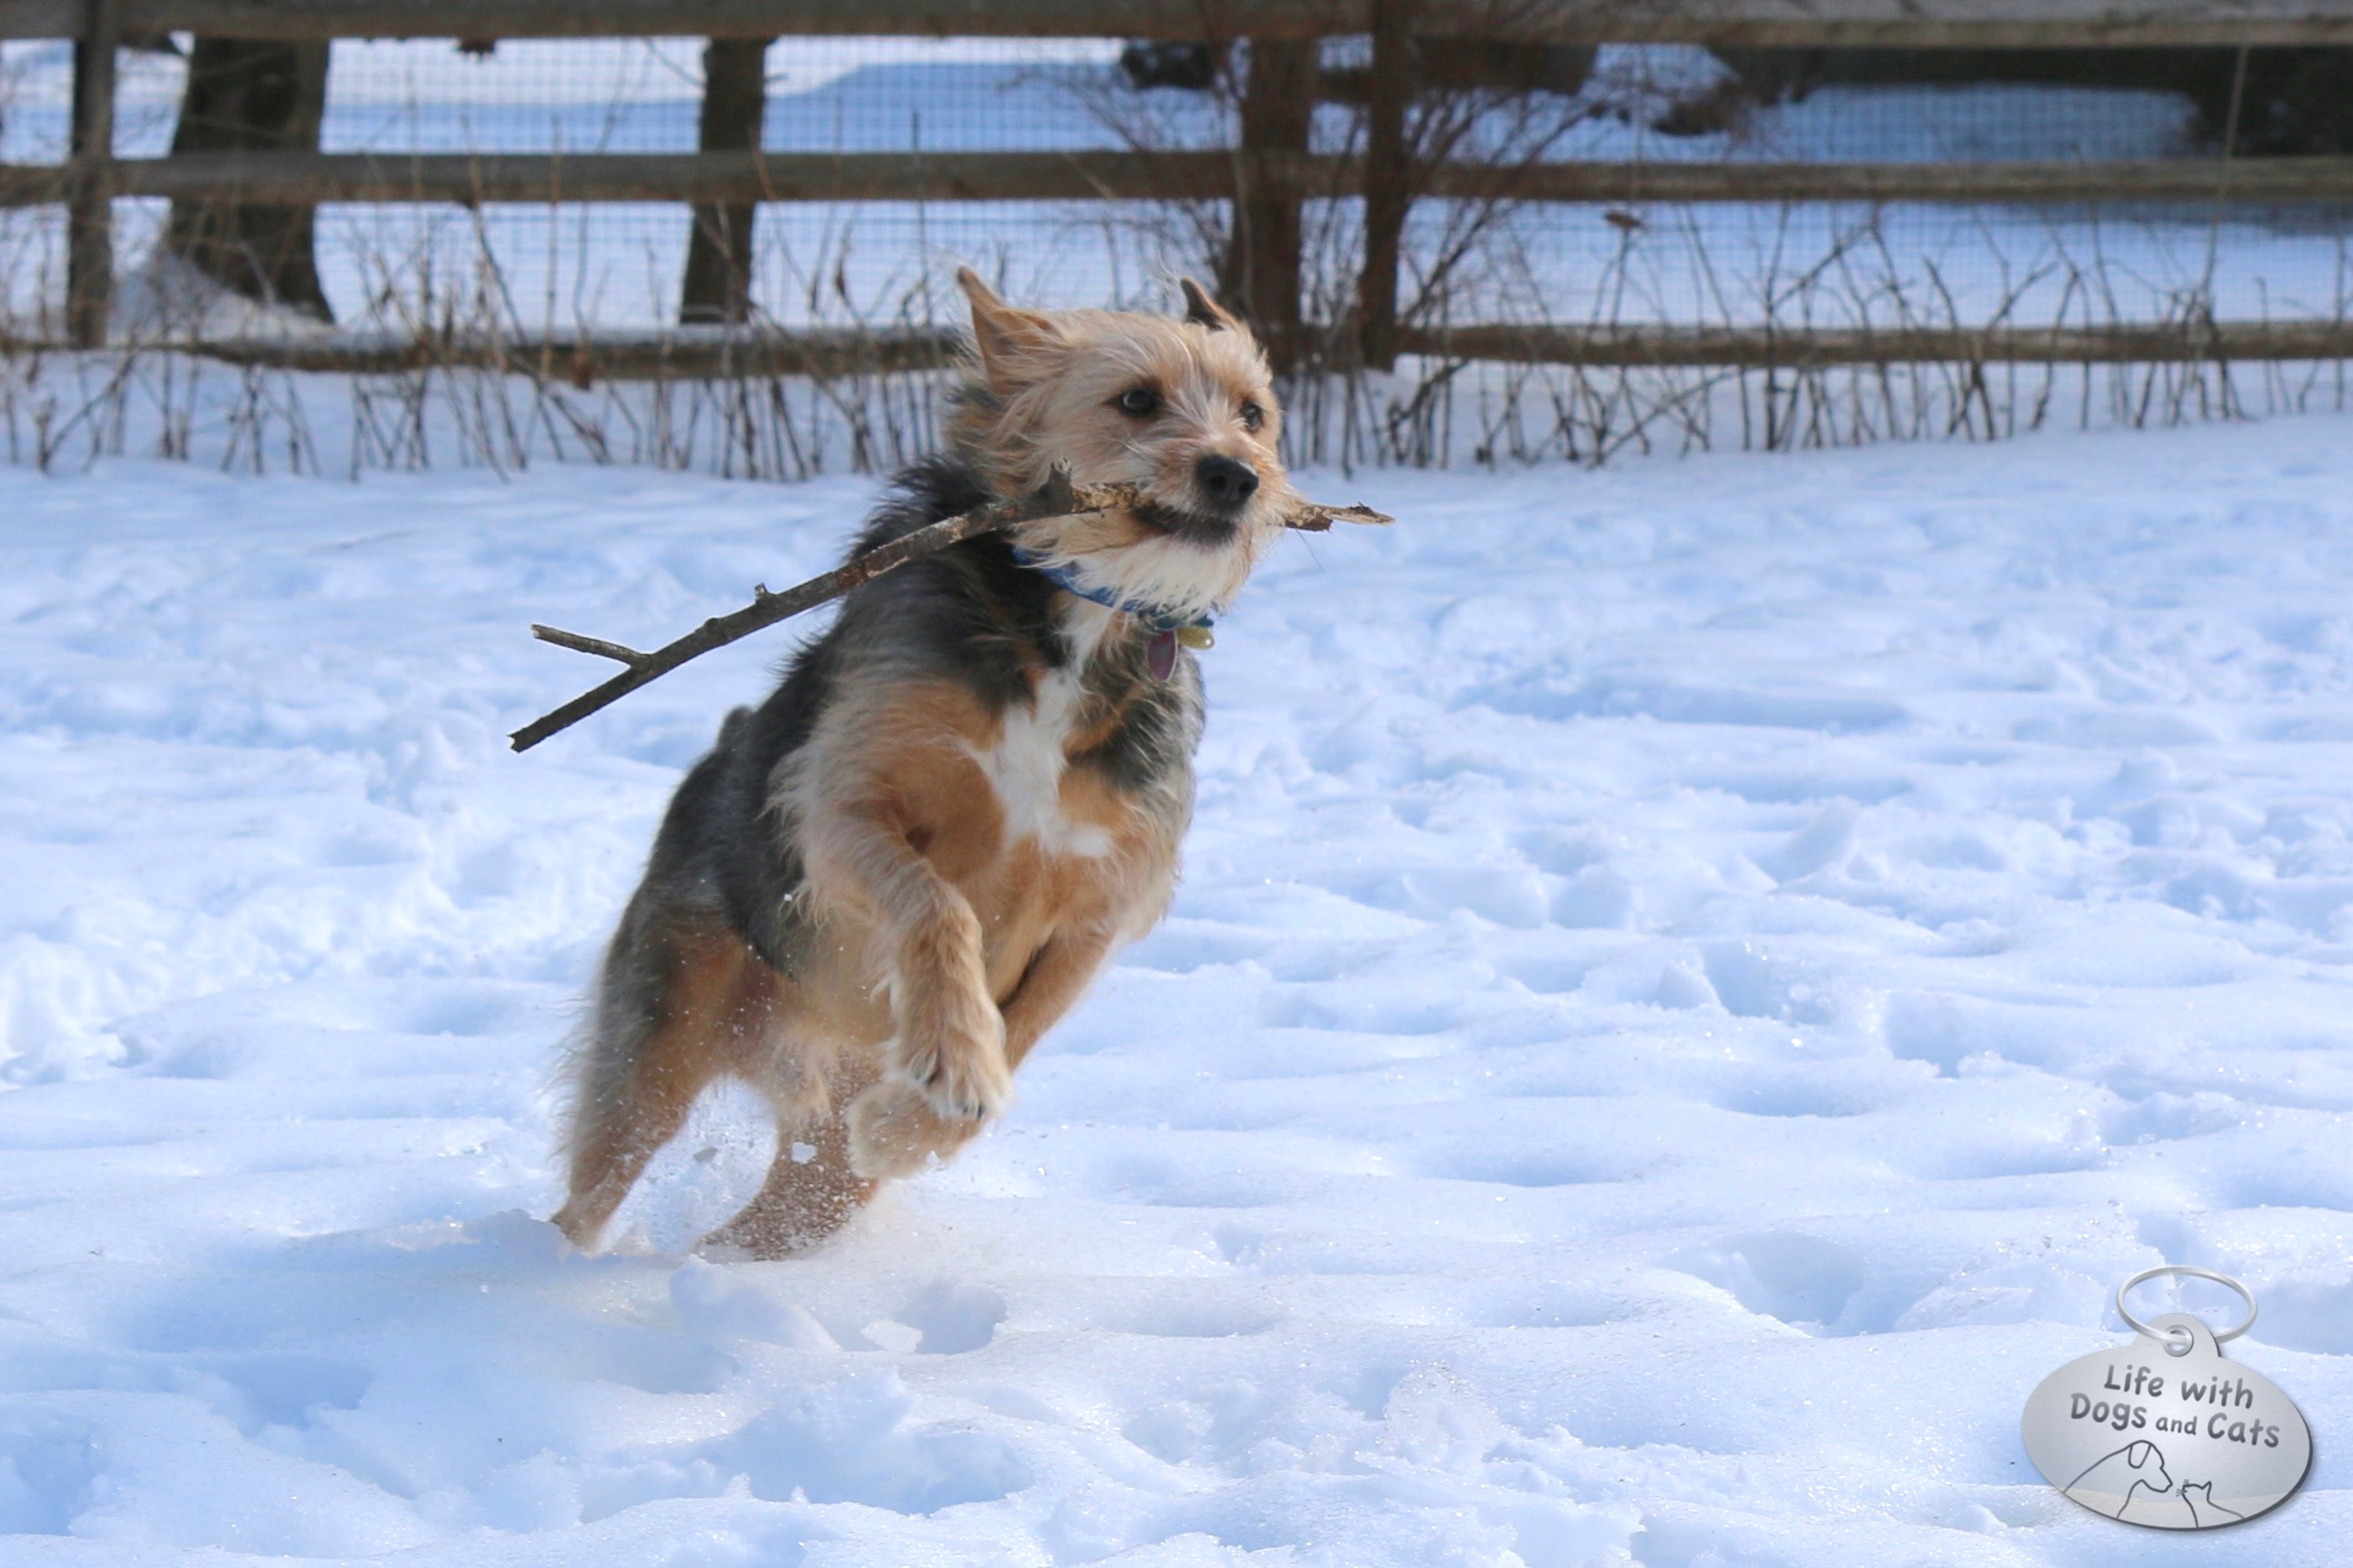 Sticks are fun to play fetch with in the snow; they land on top instead of sinking down like balls.